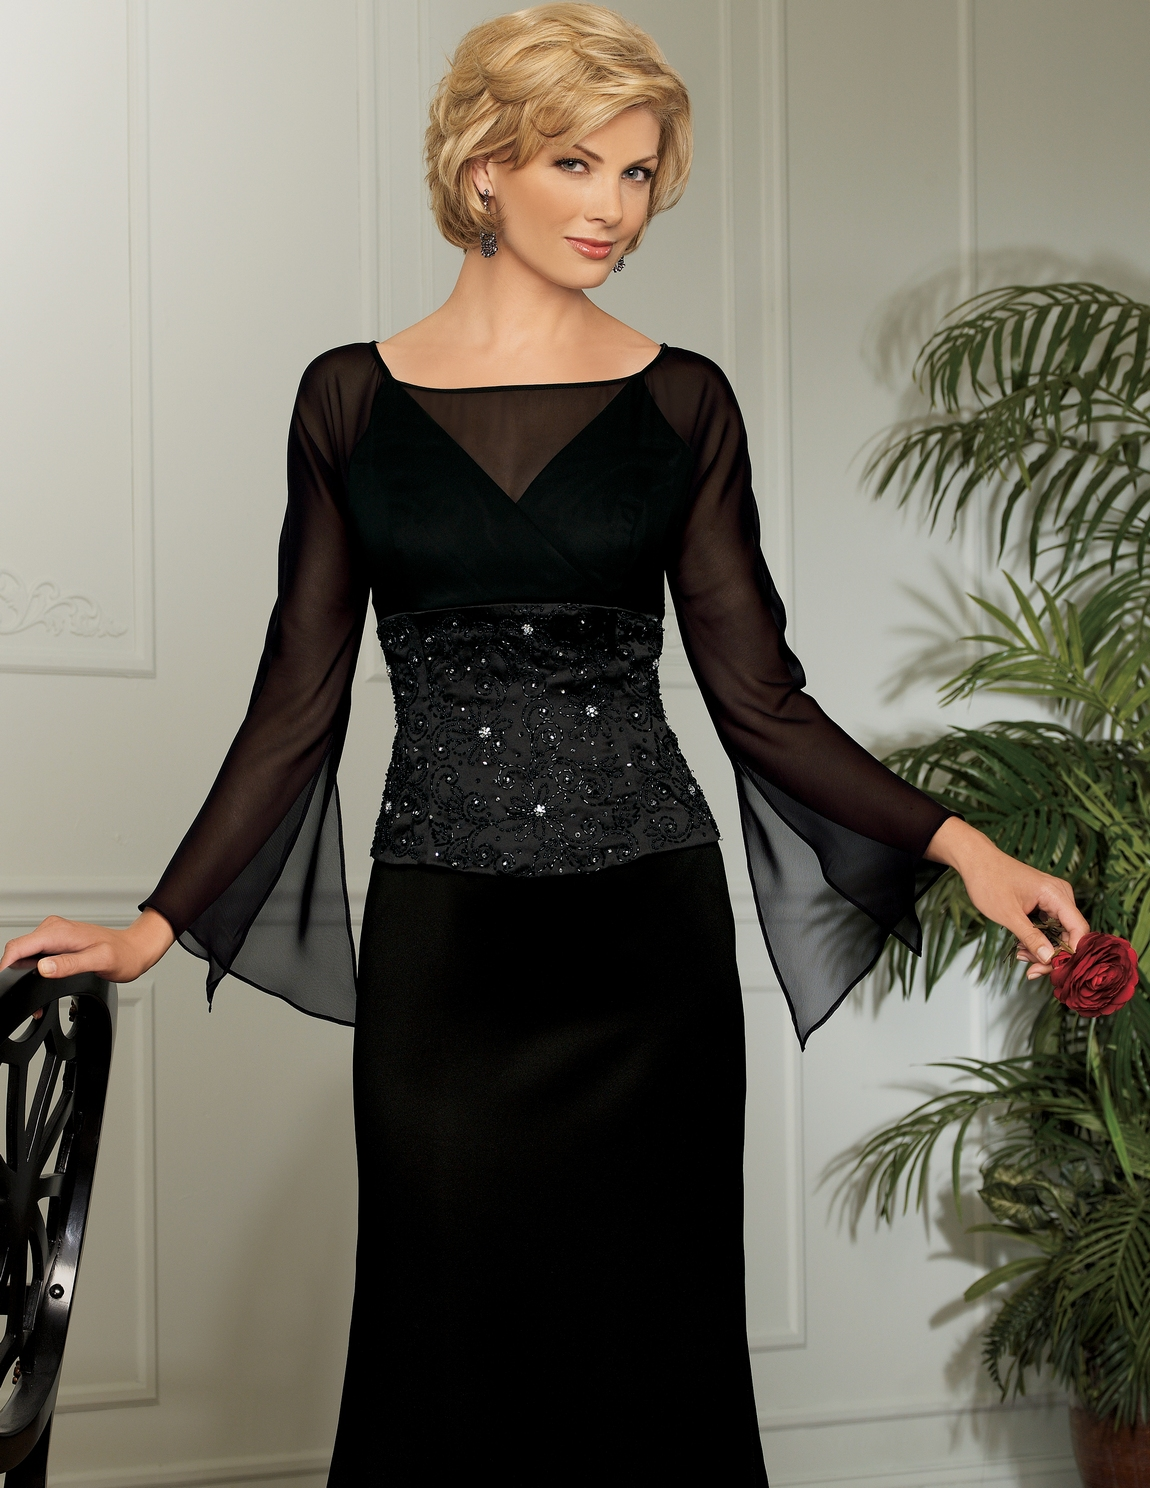 Mother Of The Bride Dresses Black - Overlay Wedding Dresses